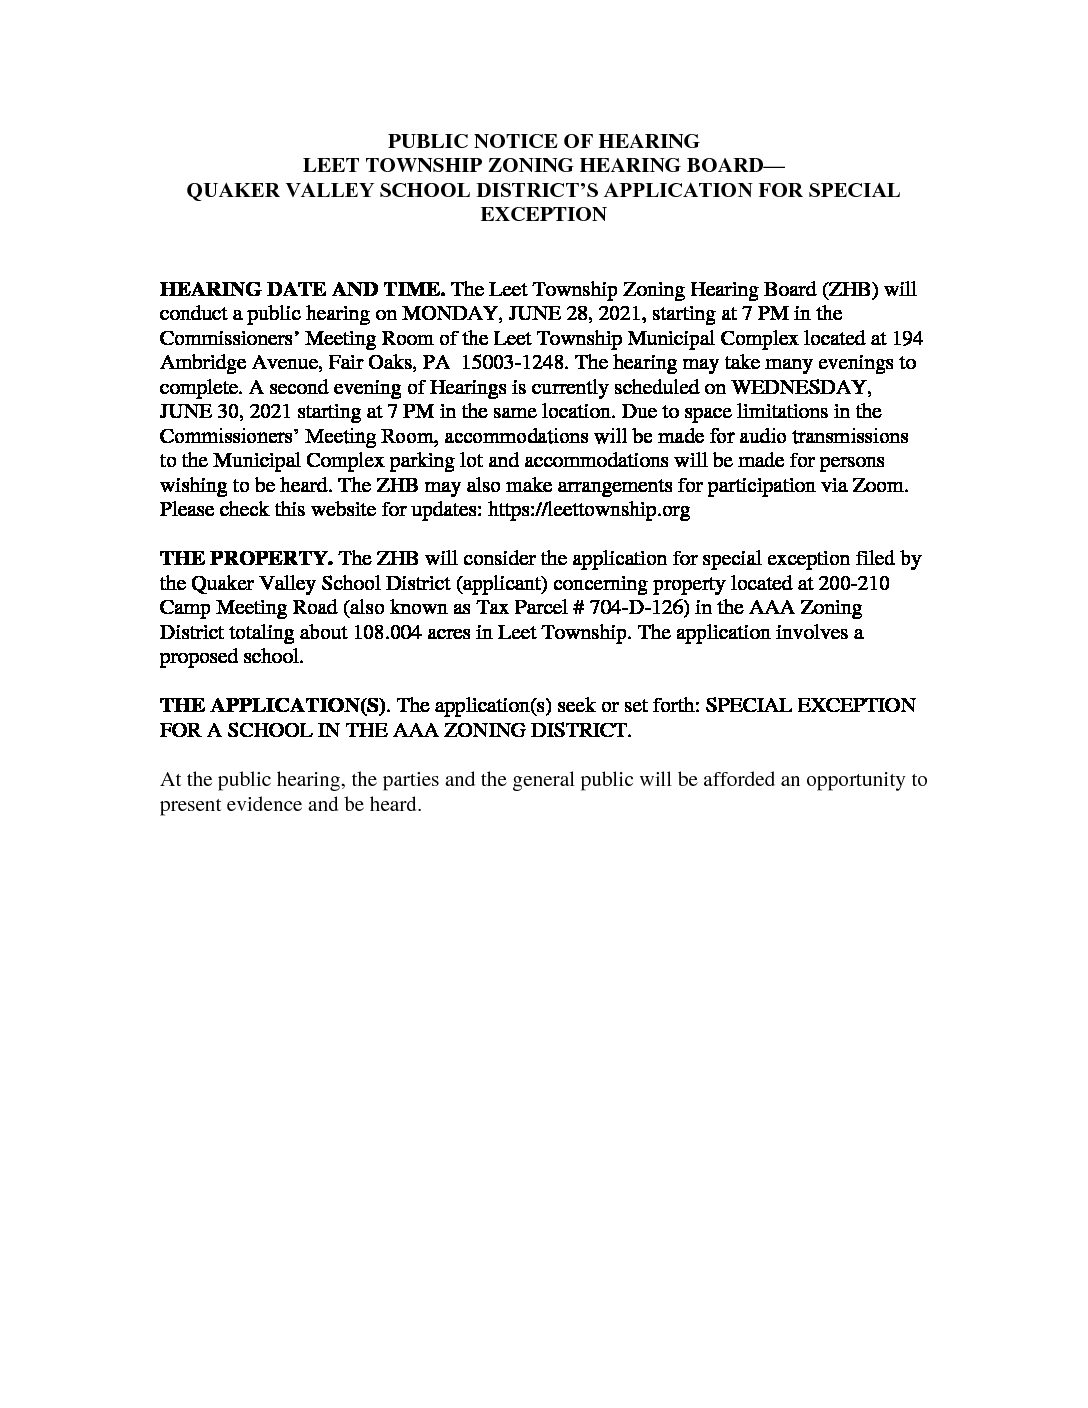 OFFICIAL NOTICE QVSD ZONING HEARING NOTICE